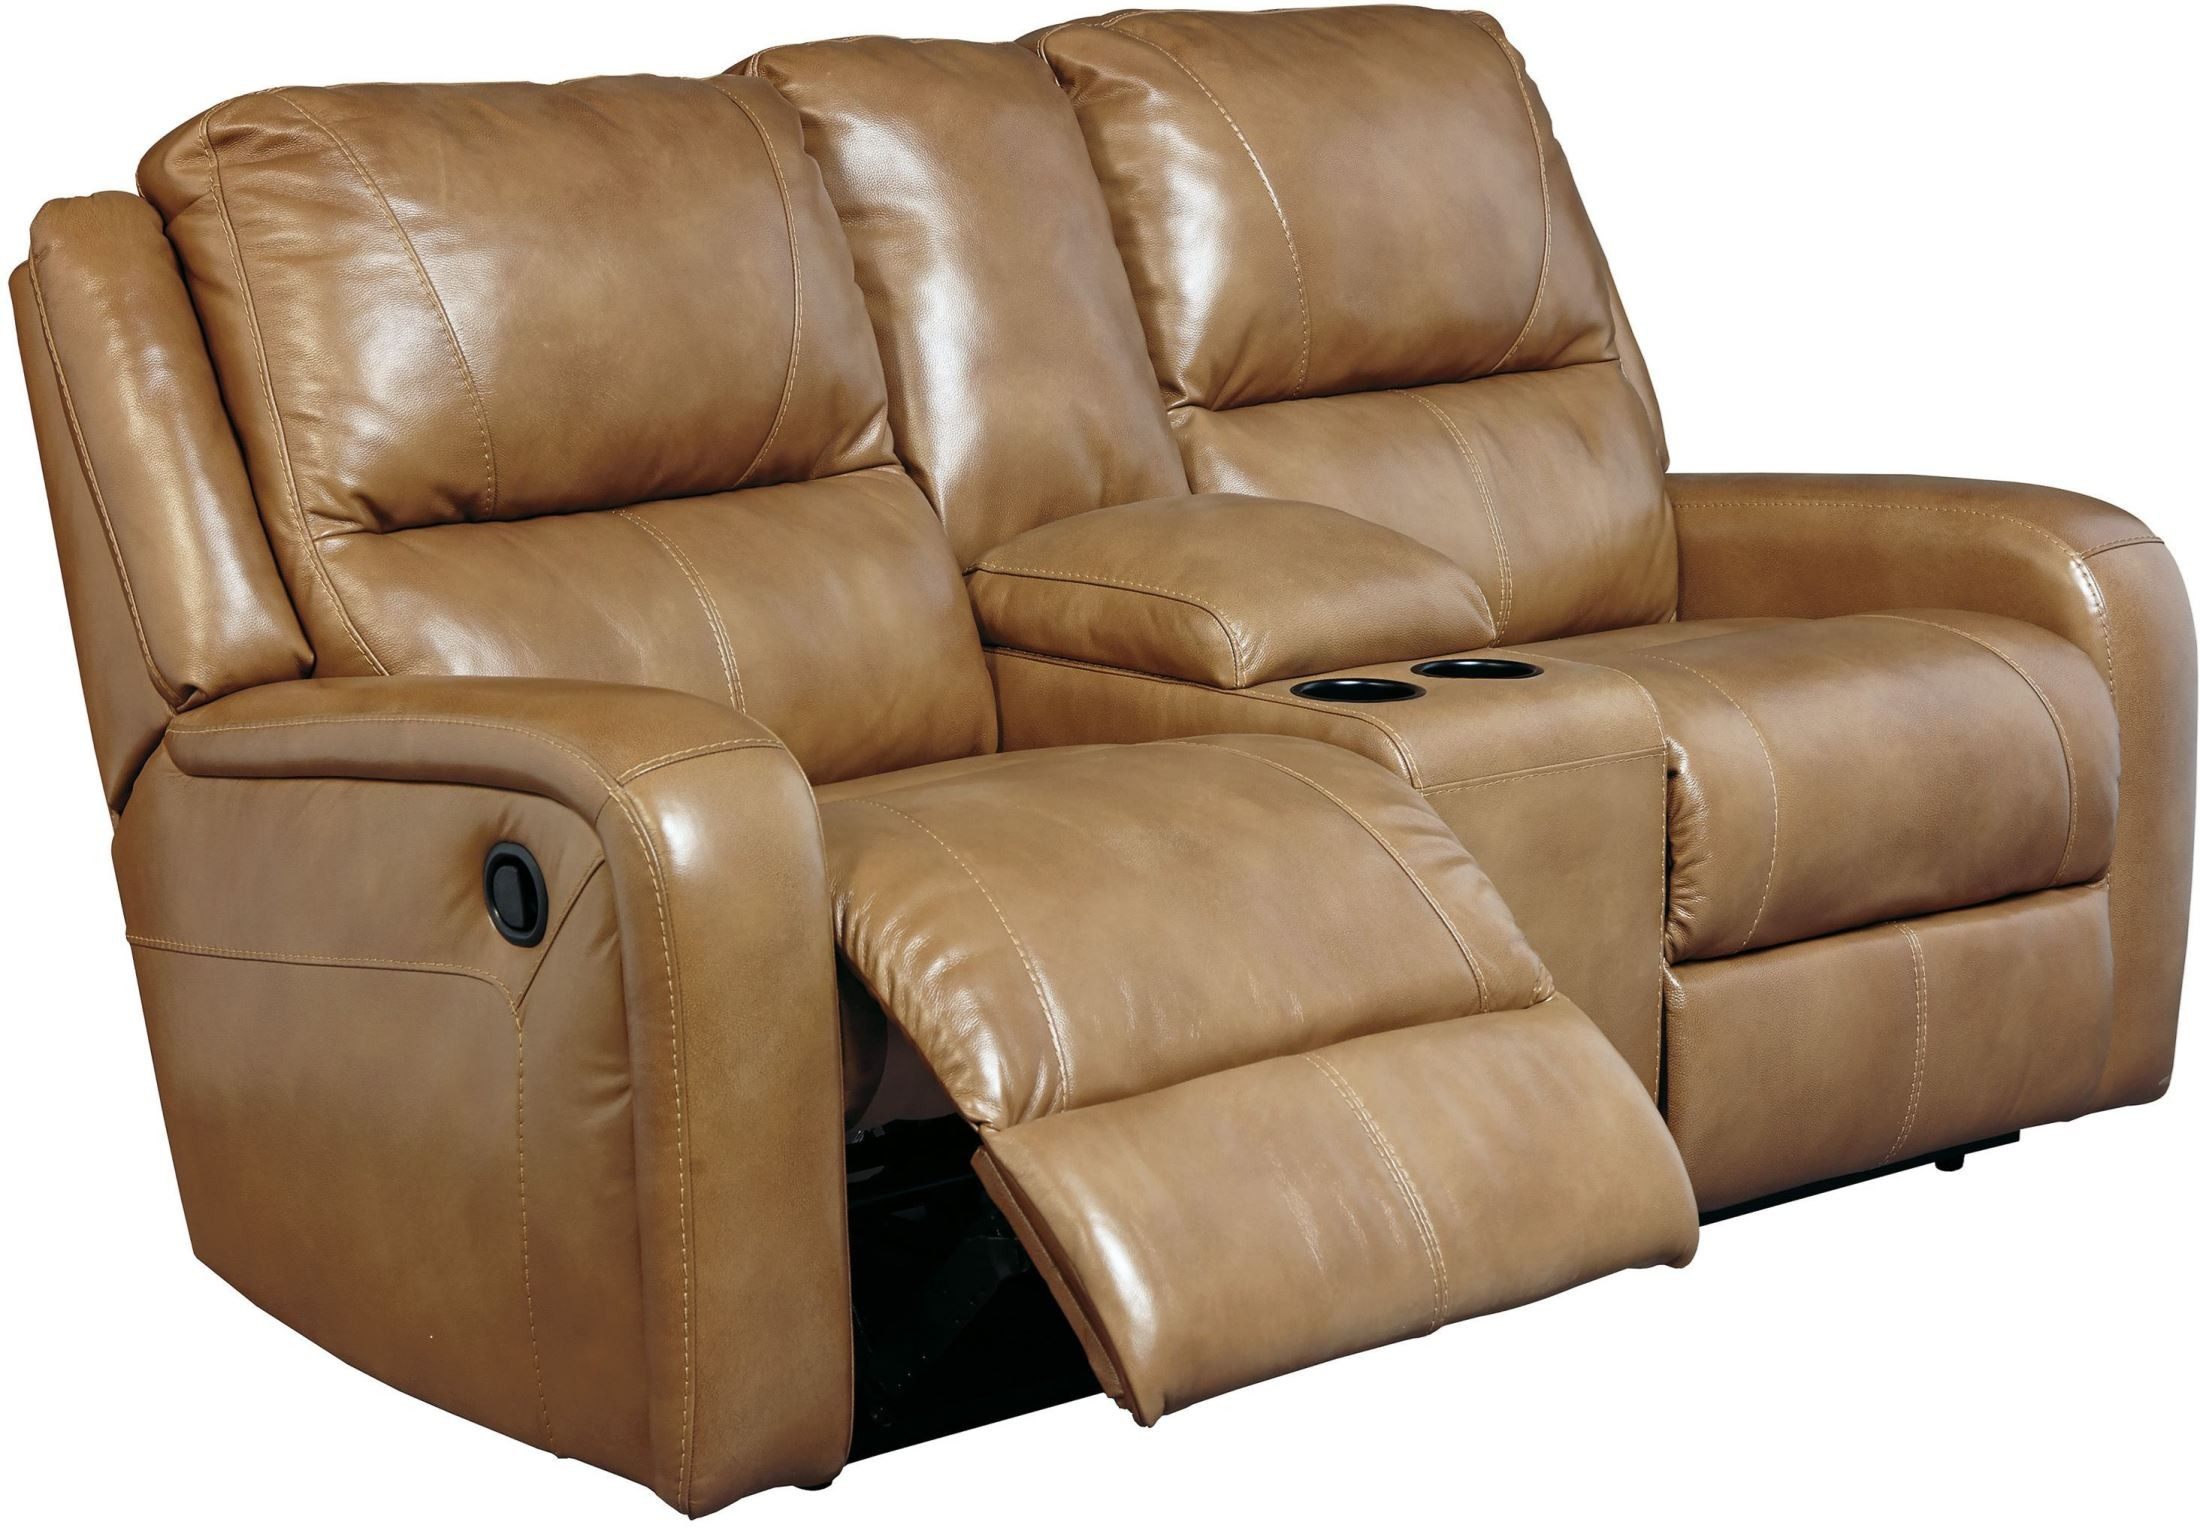 Roogan Blondie Double Power Reclining Console Loveseat From Ashley Coleman Furniture